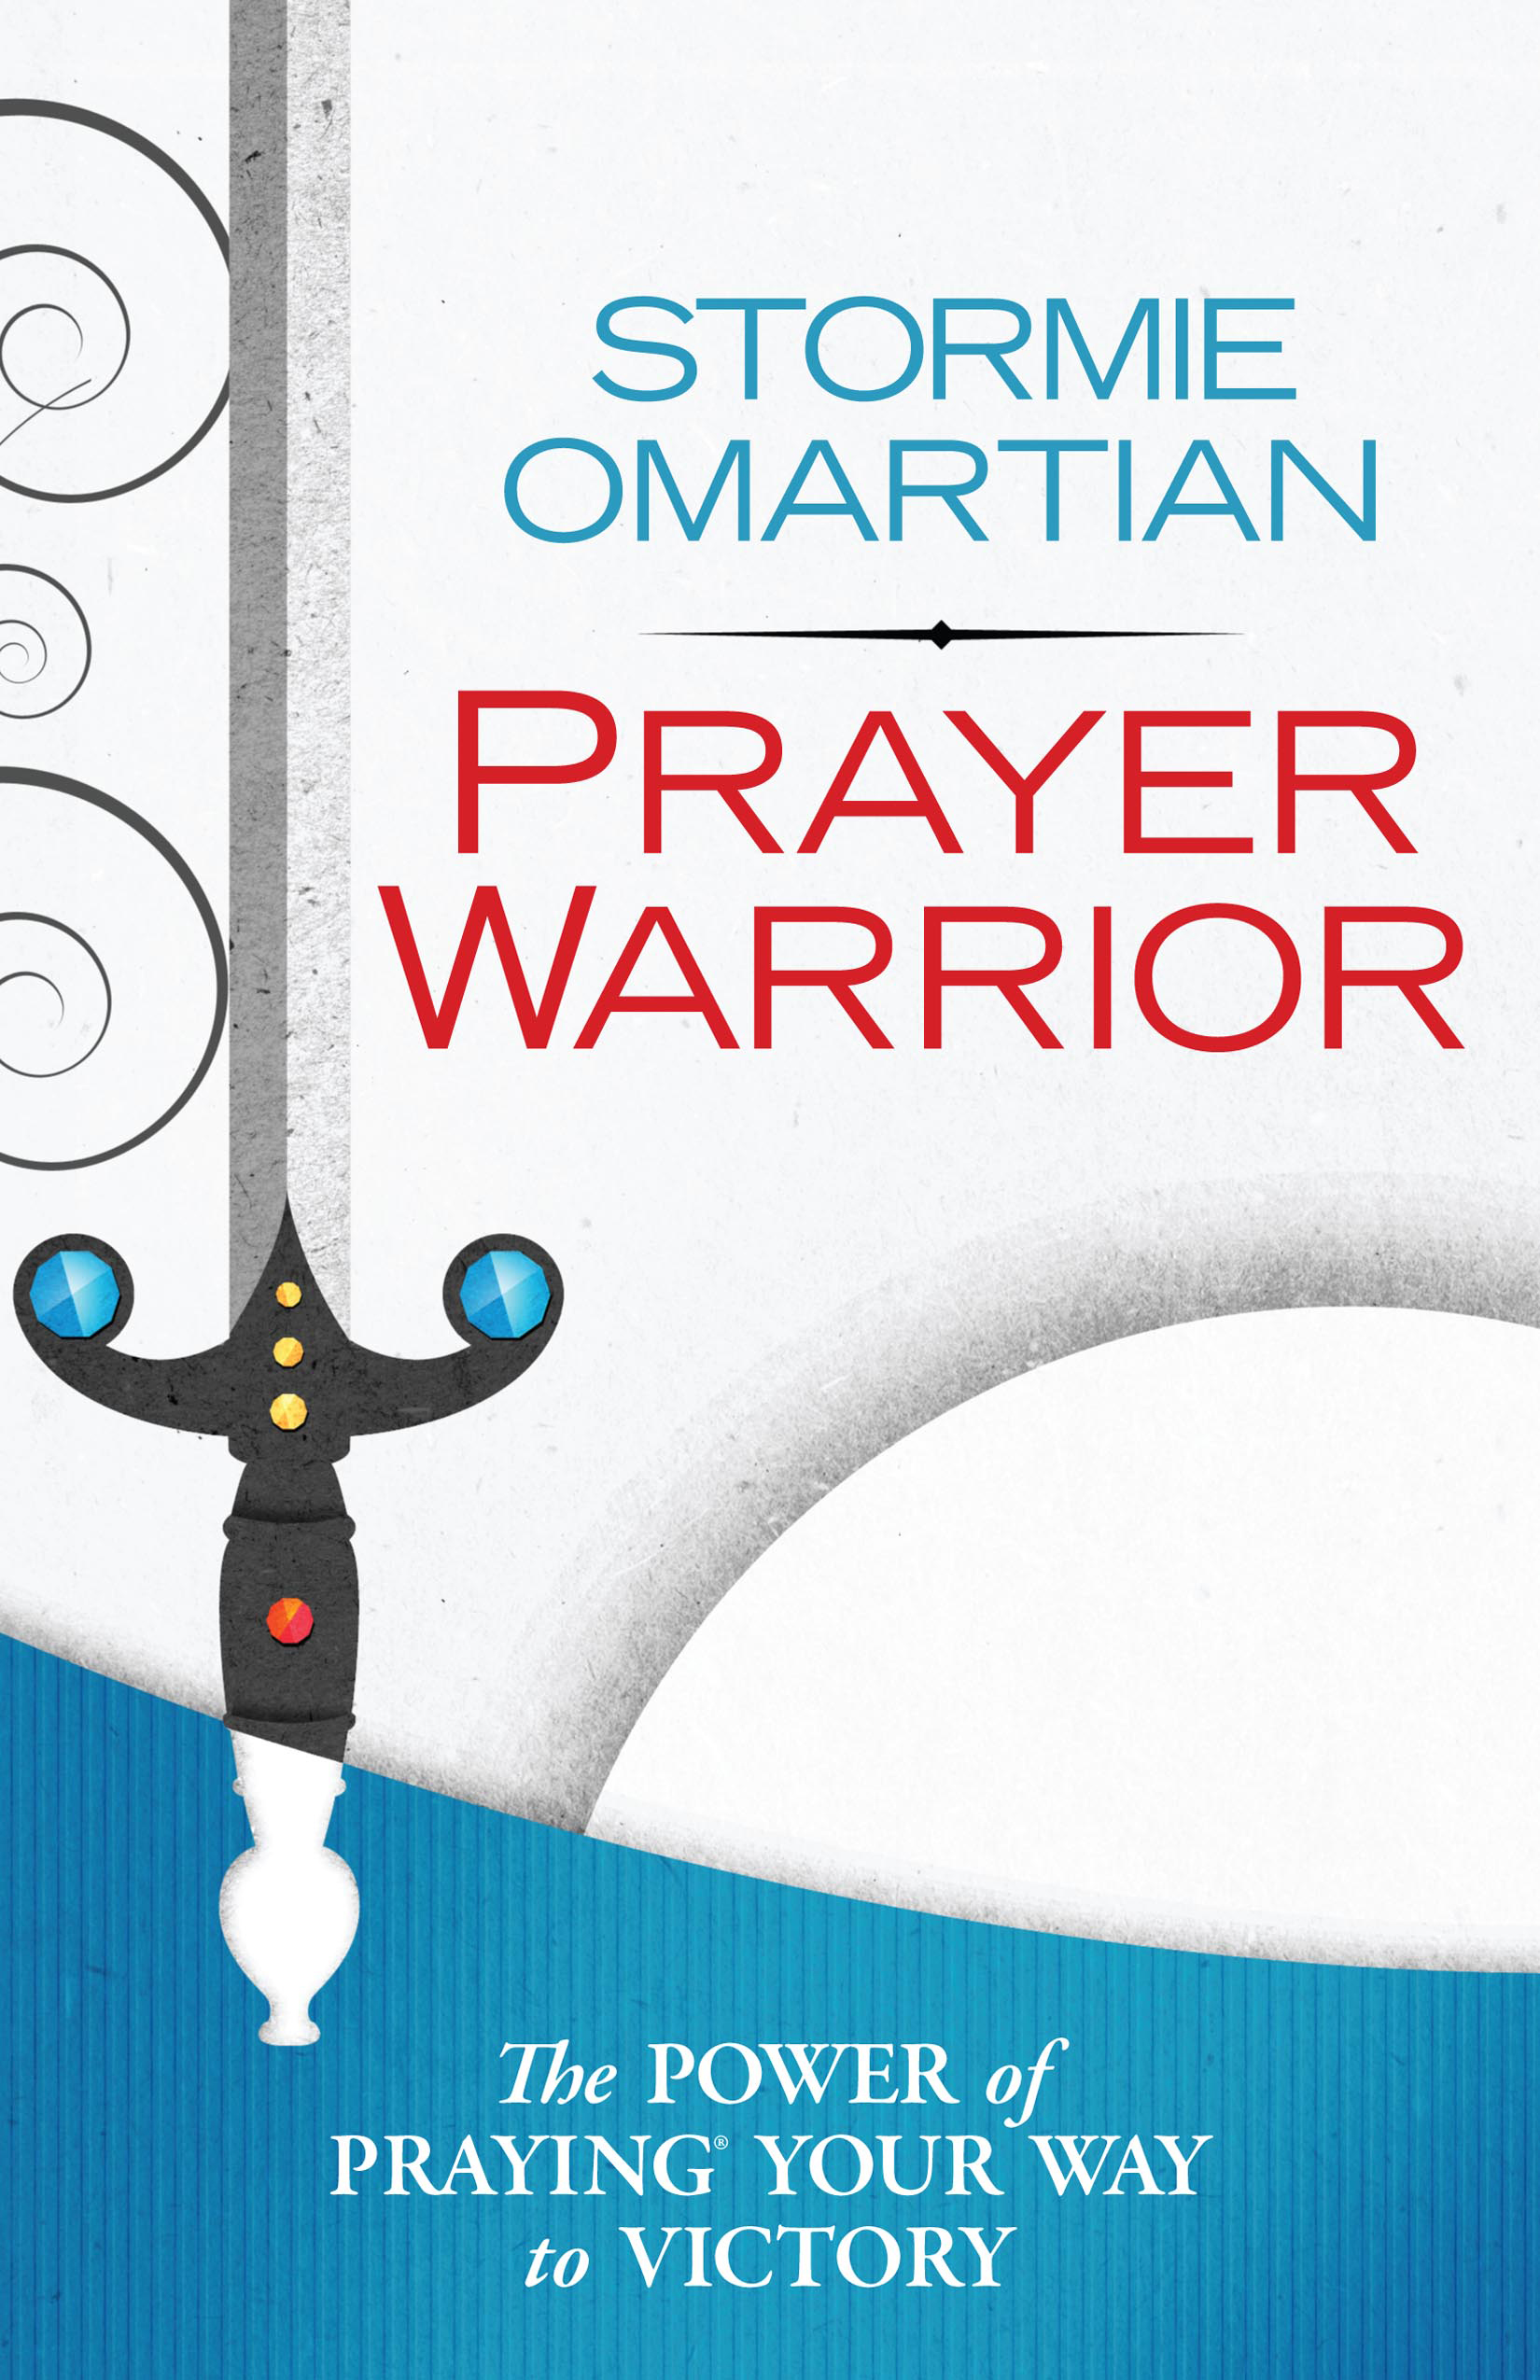 Prepare for Battle with 5 Spiritual Warfare PrayersHarvest House